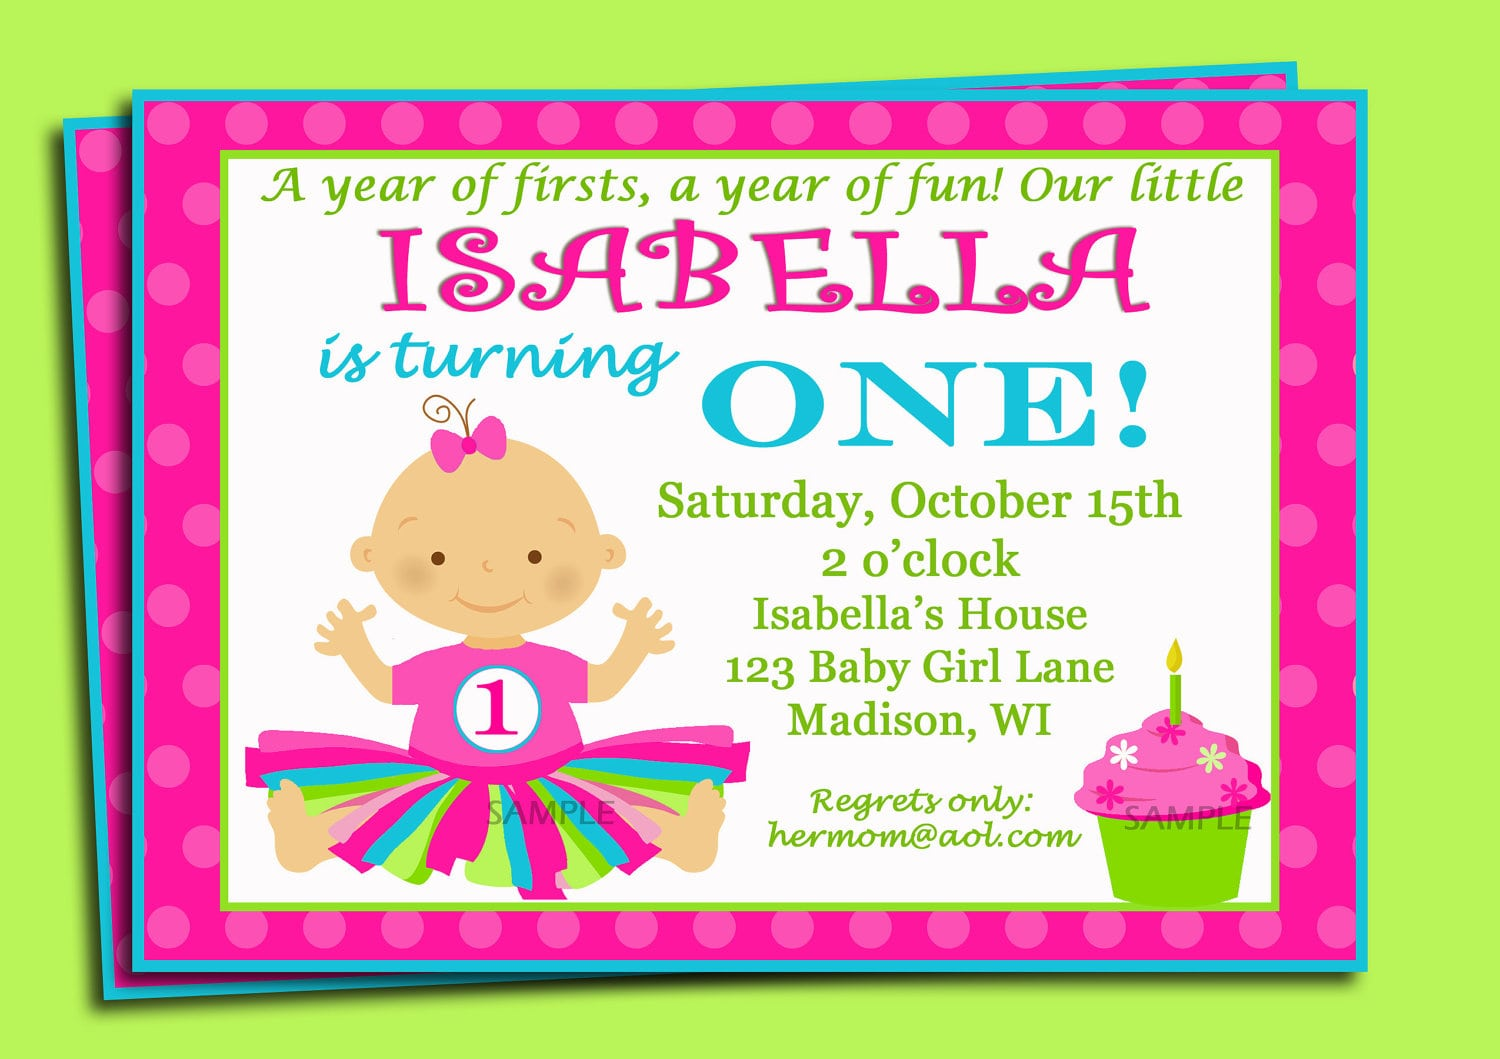 Kids Birthday Party Invitation Wording Ideas